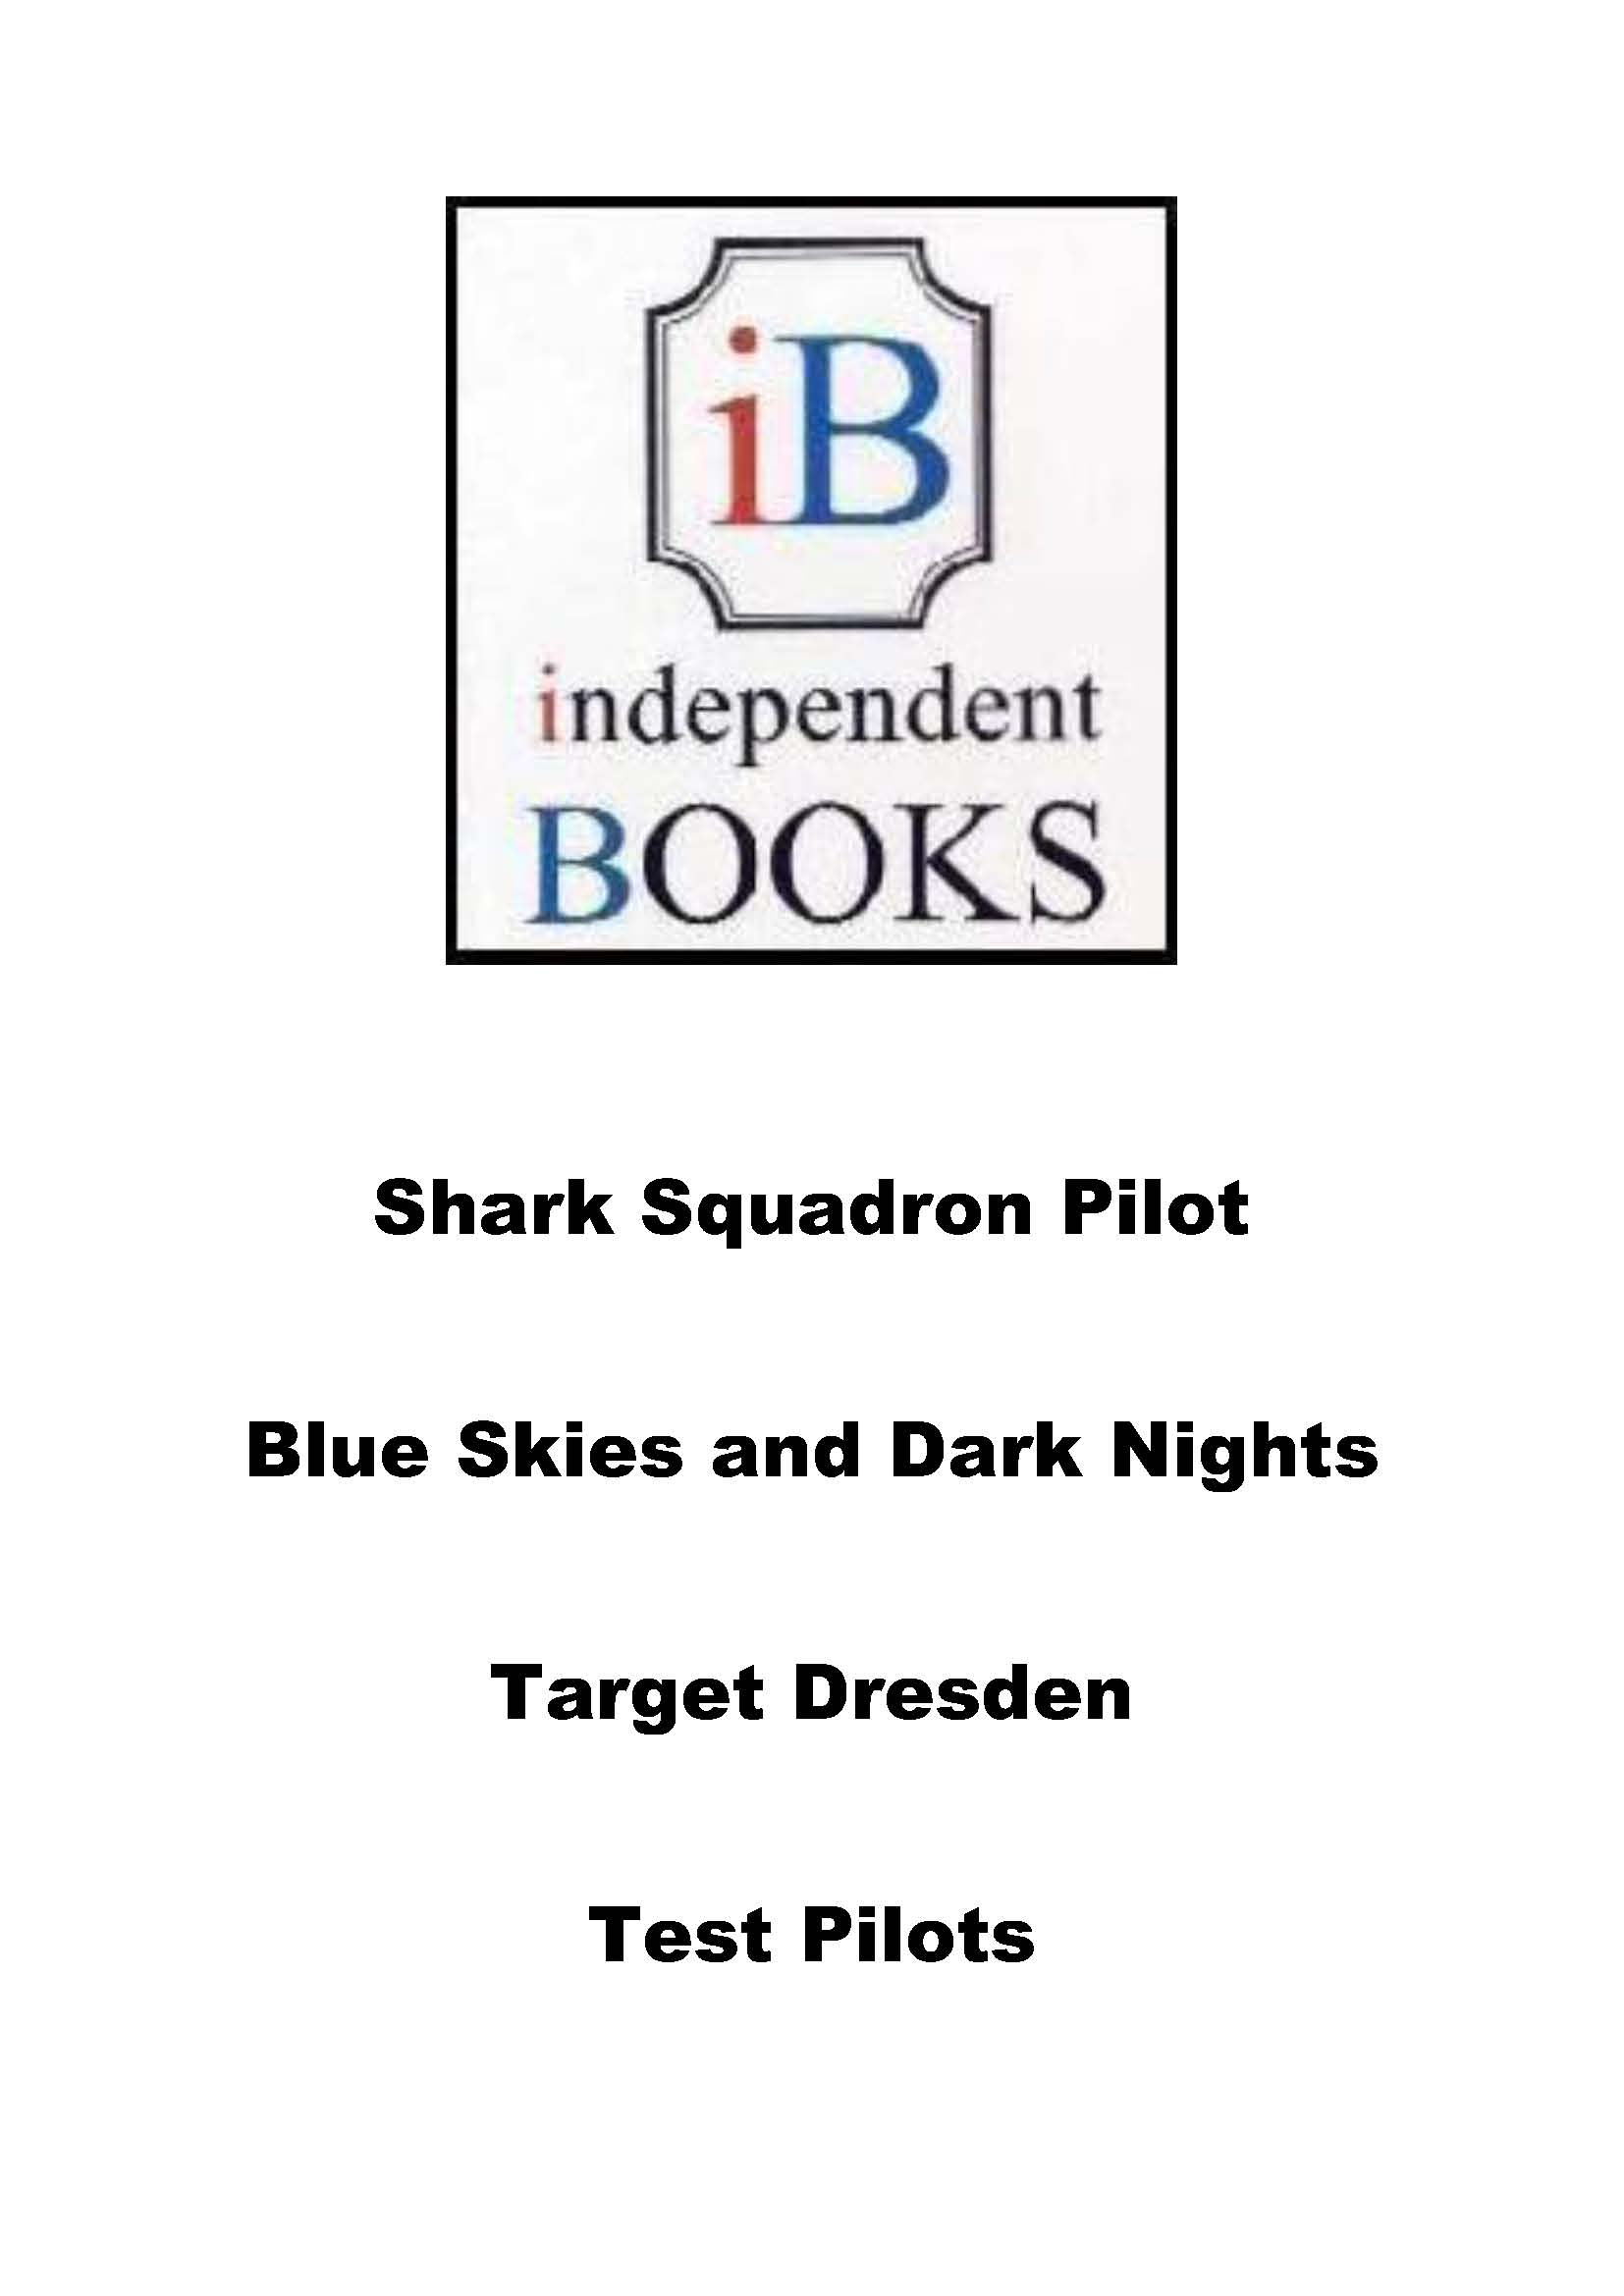 Independent Books Special Offer